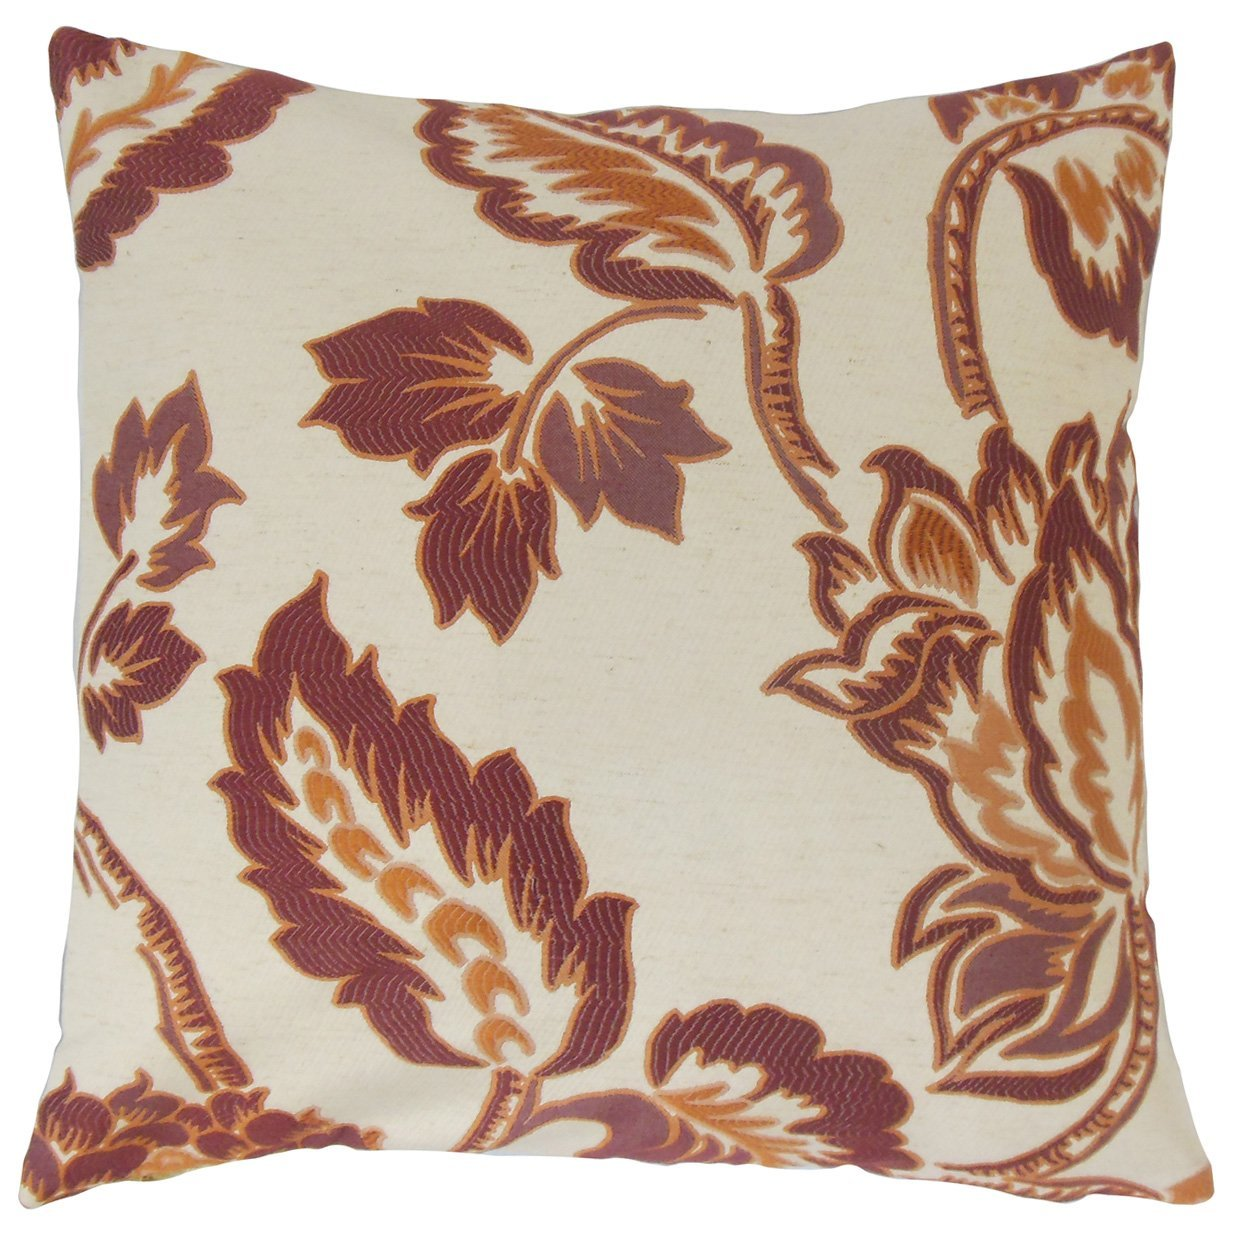 The Pillow Collection Rhynisha Floral Bedding Sham Ginger King//20 x 36